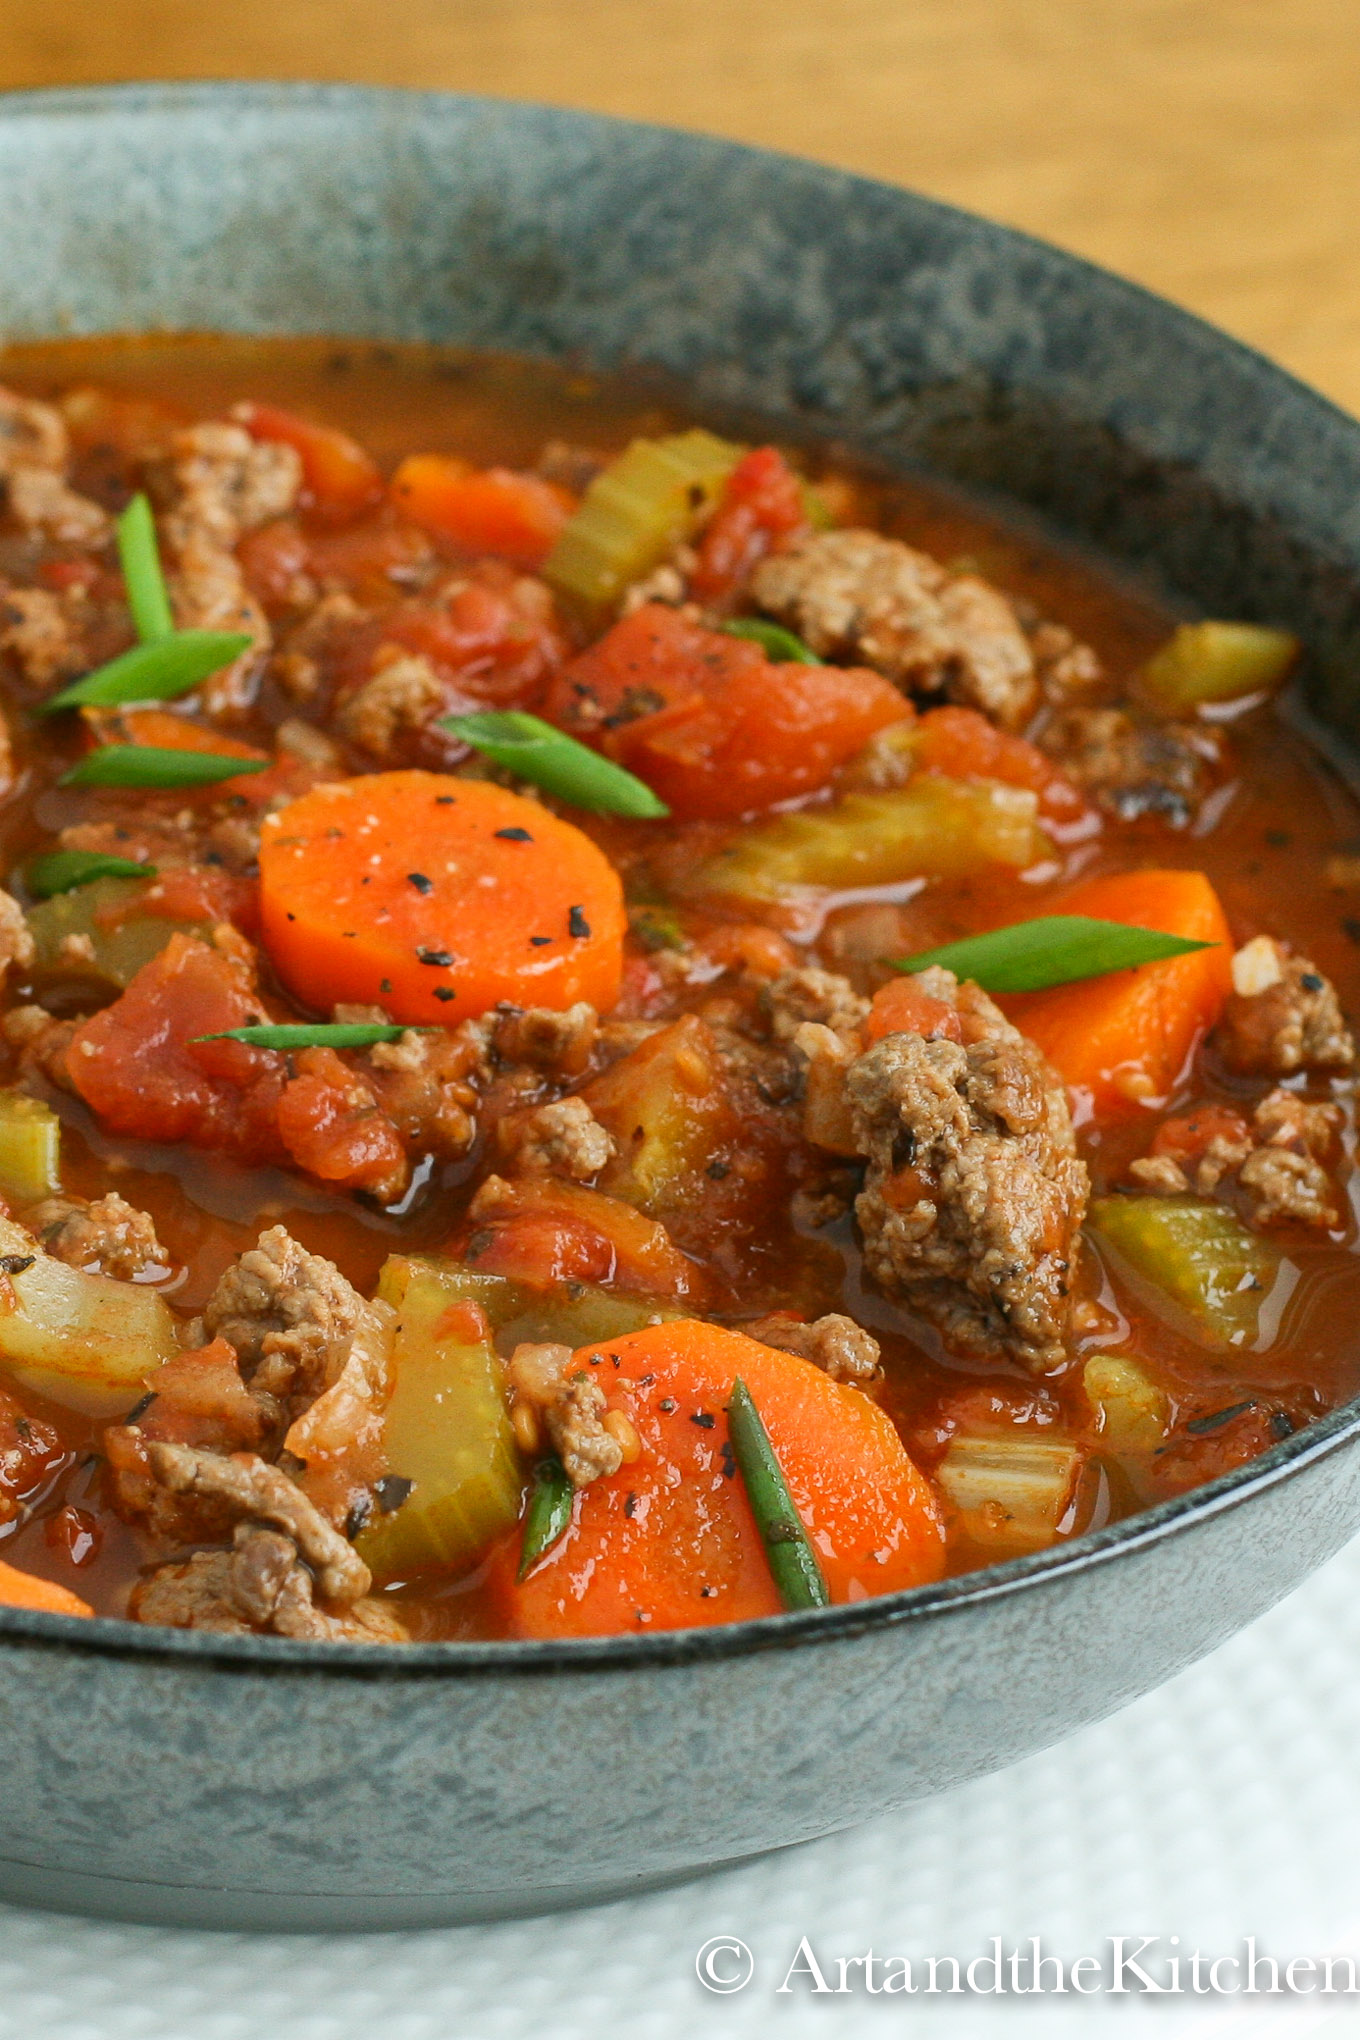 Green bowl filled with soup made with chunks of ground beef, carrots, tomatoes and celery.